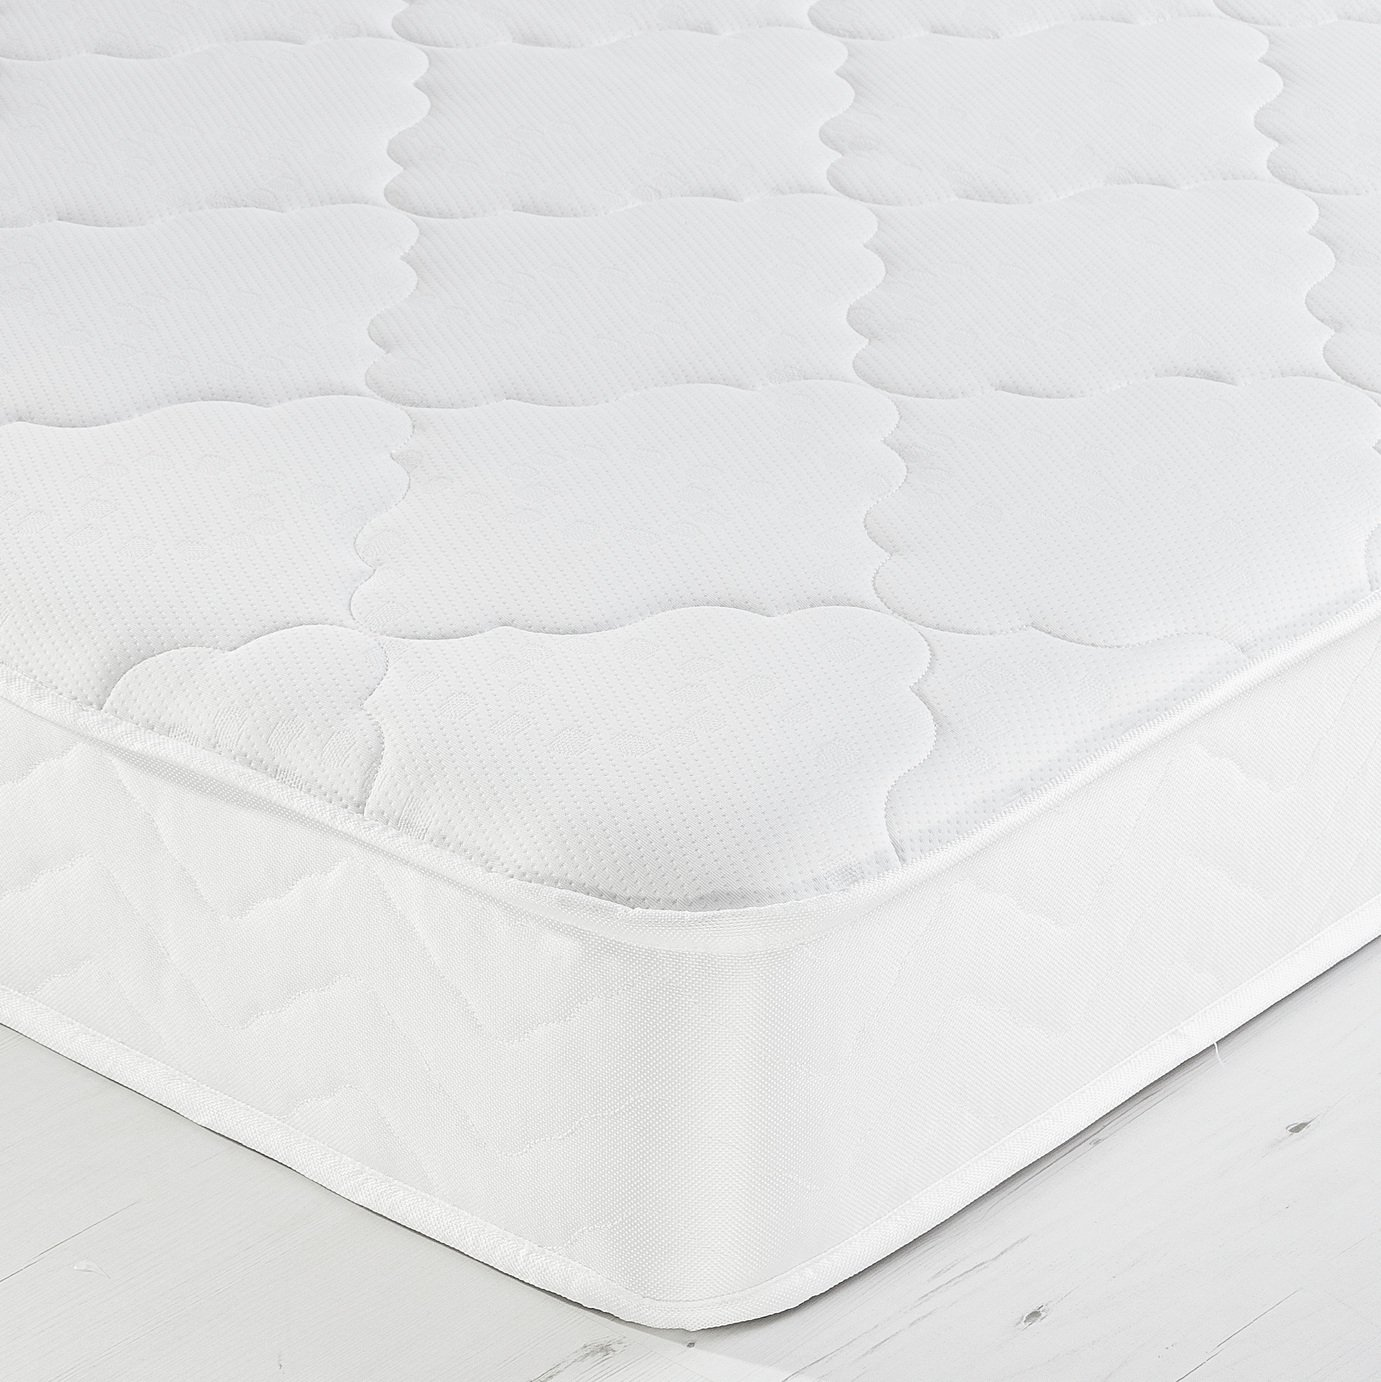 Airsprung Bower Open Coil Memory Foam Superking Mattress